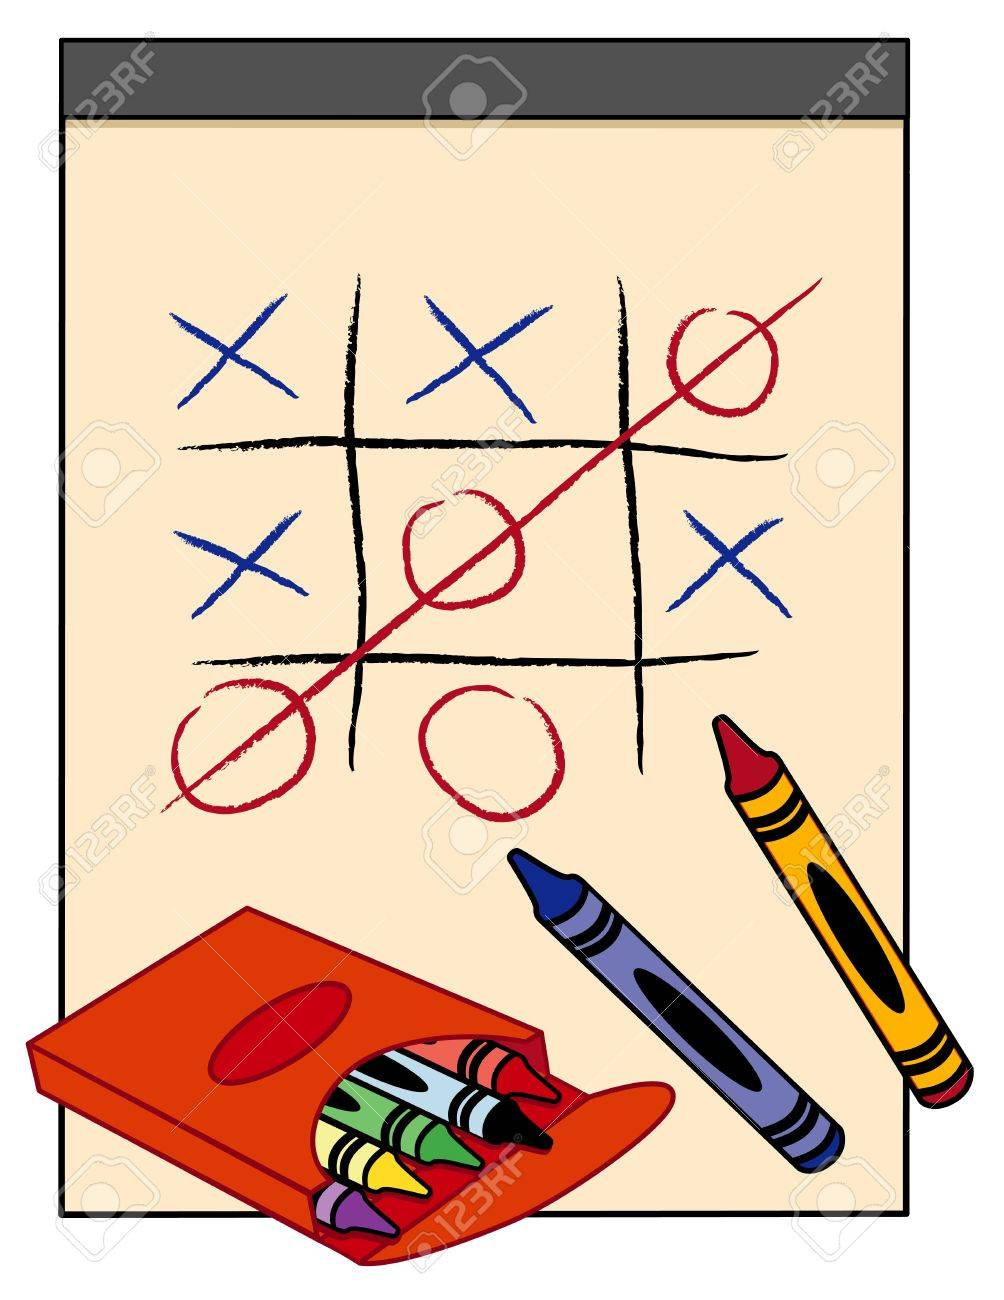 1004x1300 Tic Tac Toe Game On Paper Drawing Tablet With Box Of Crayons